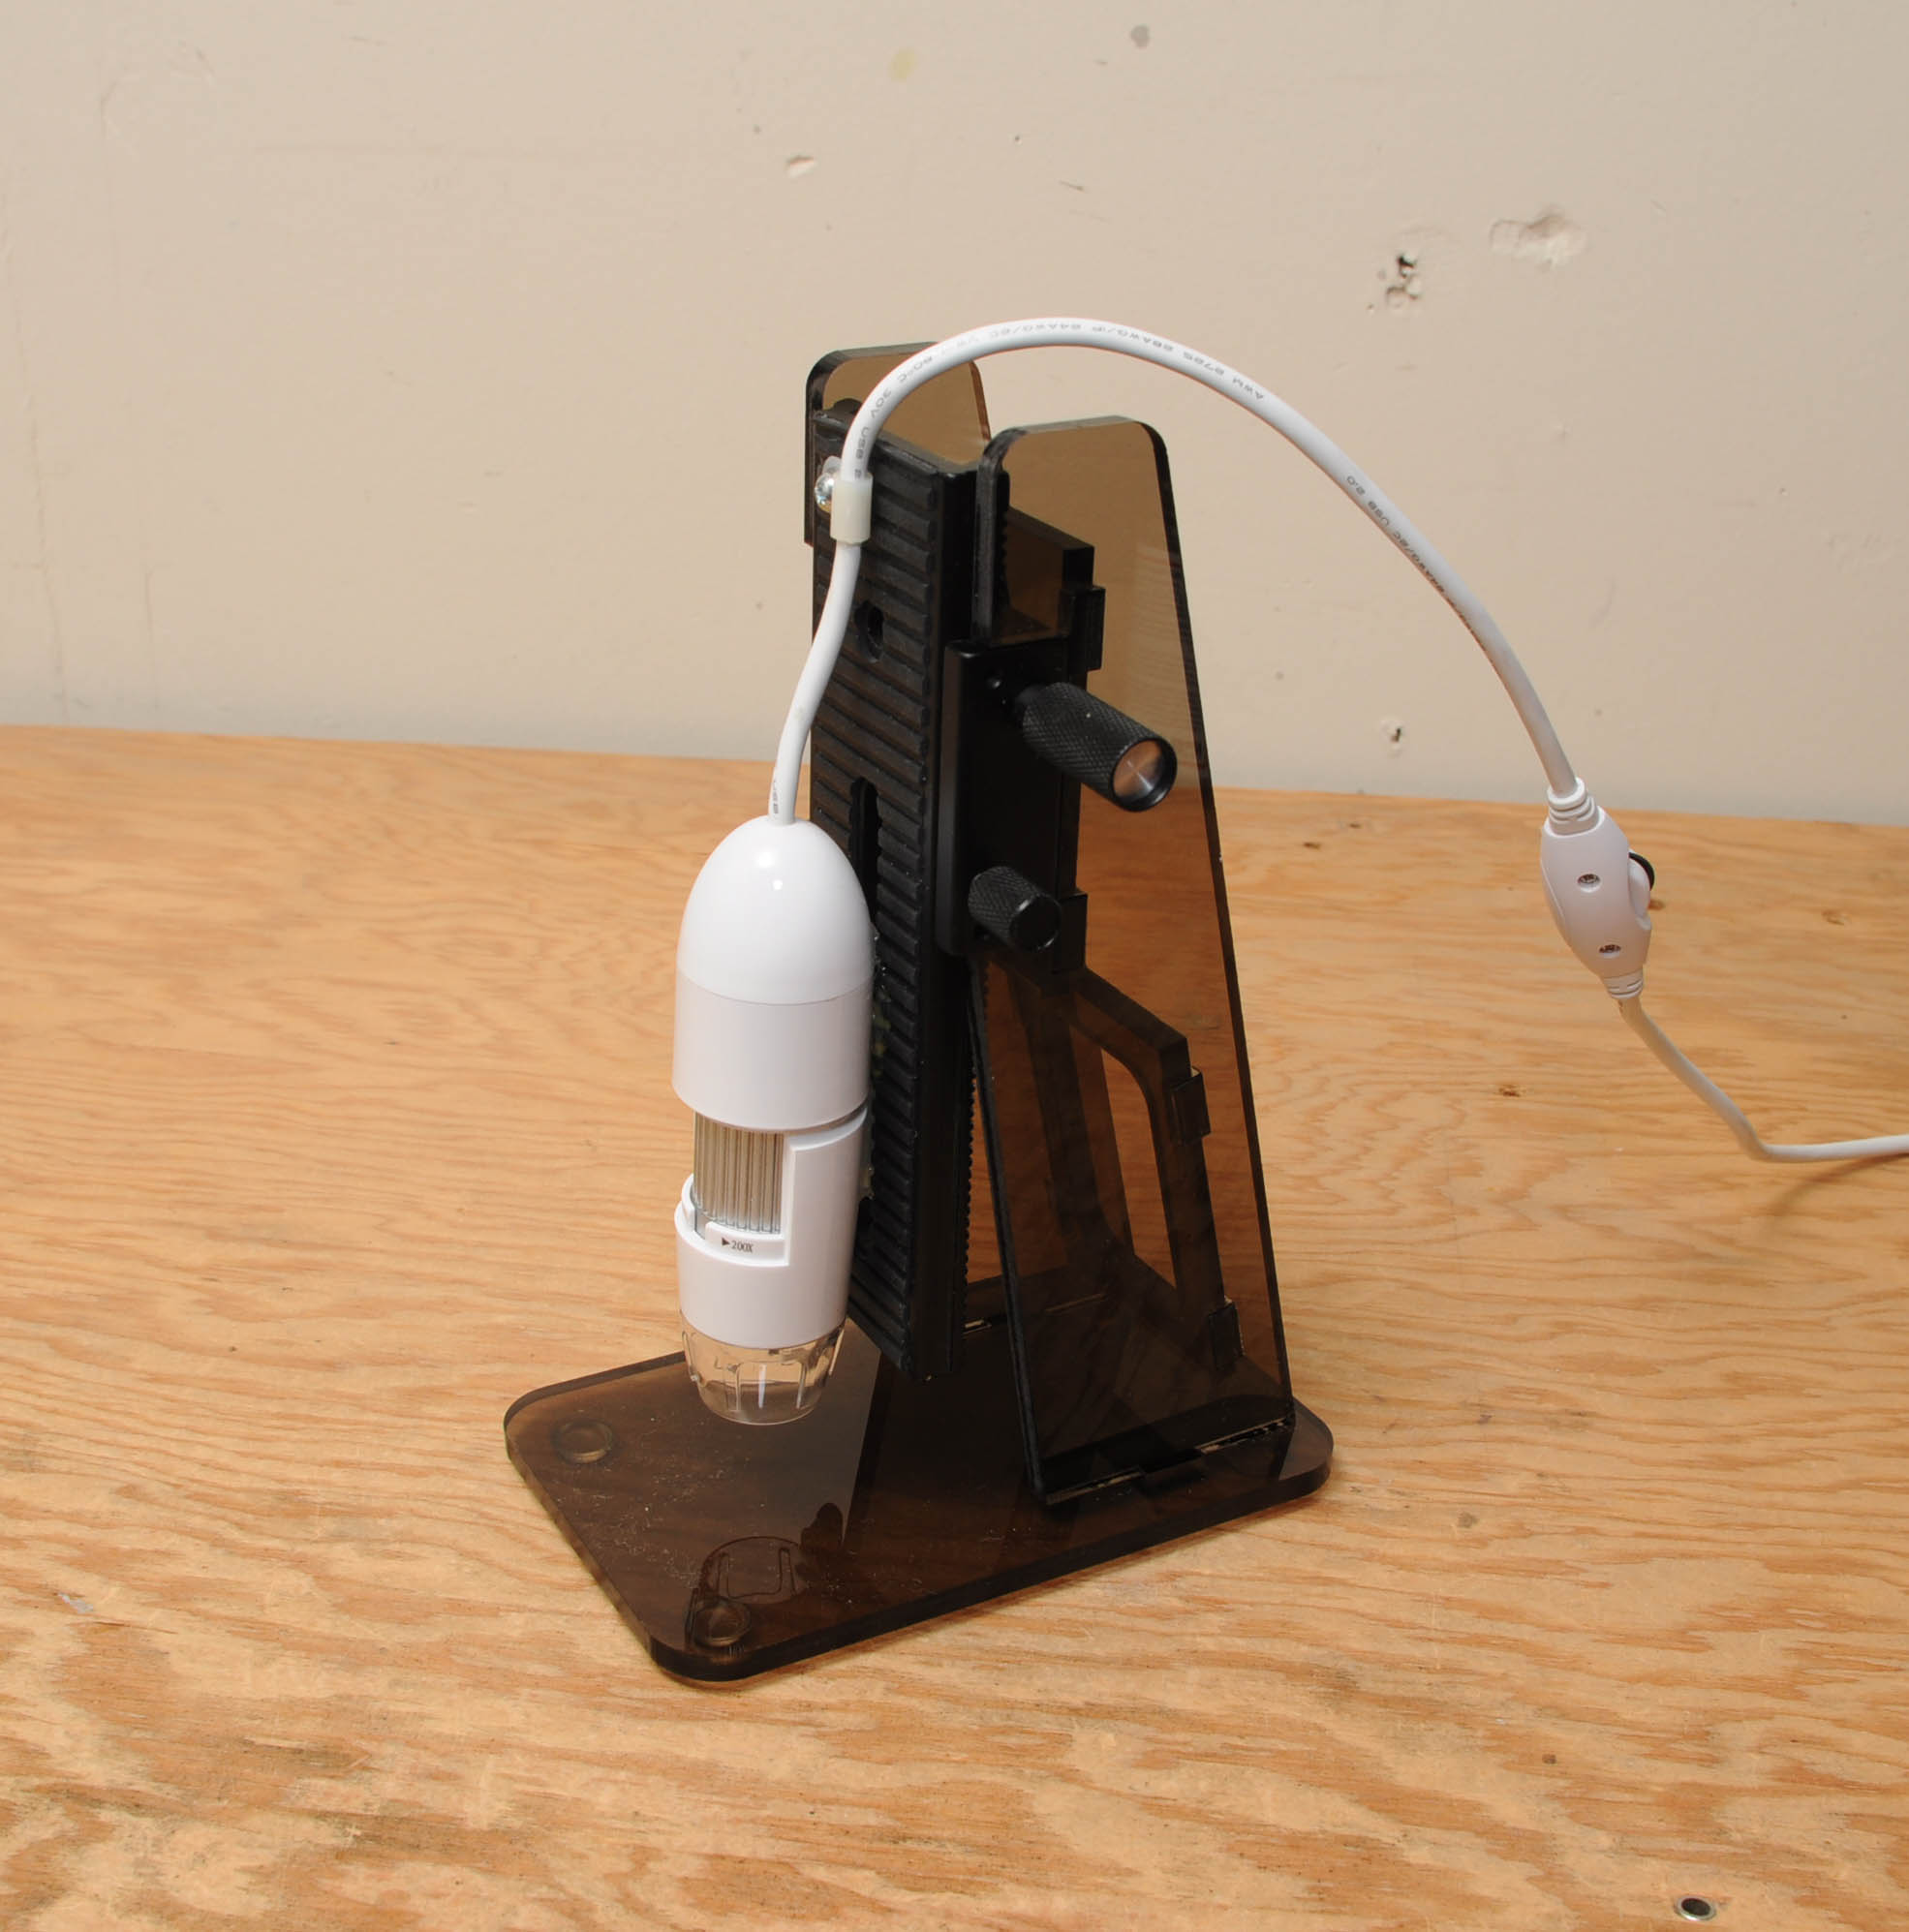 Focusing stand makes cheap USB microscope more useful